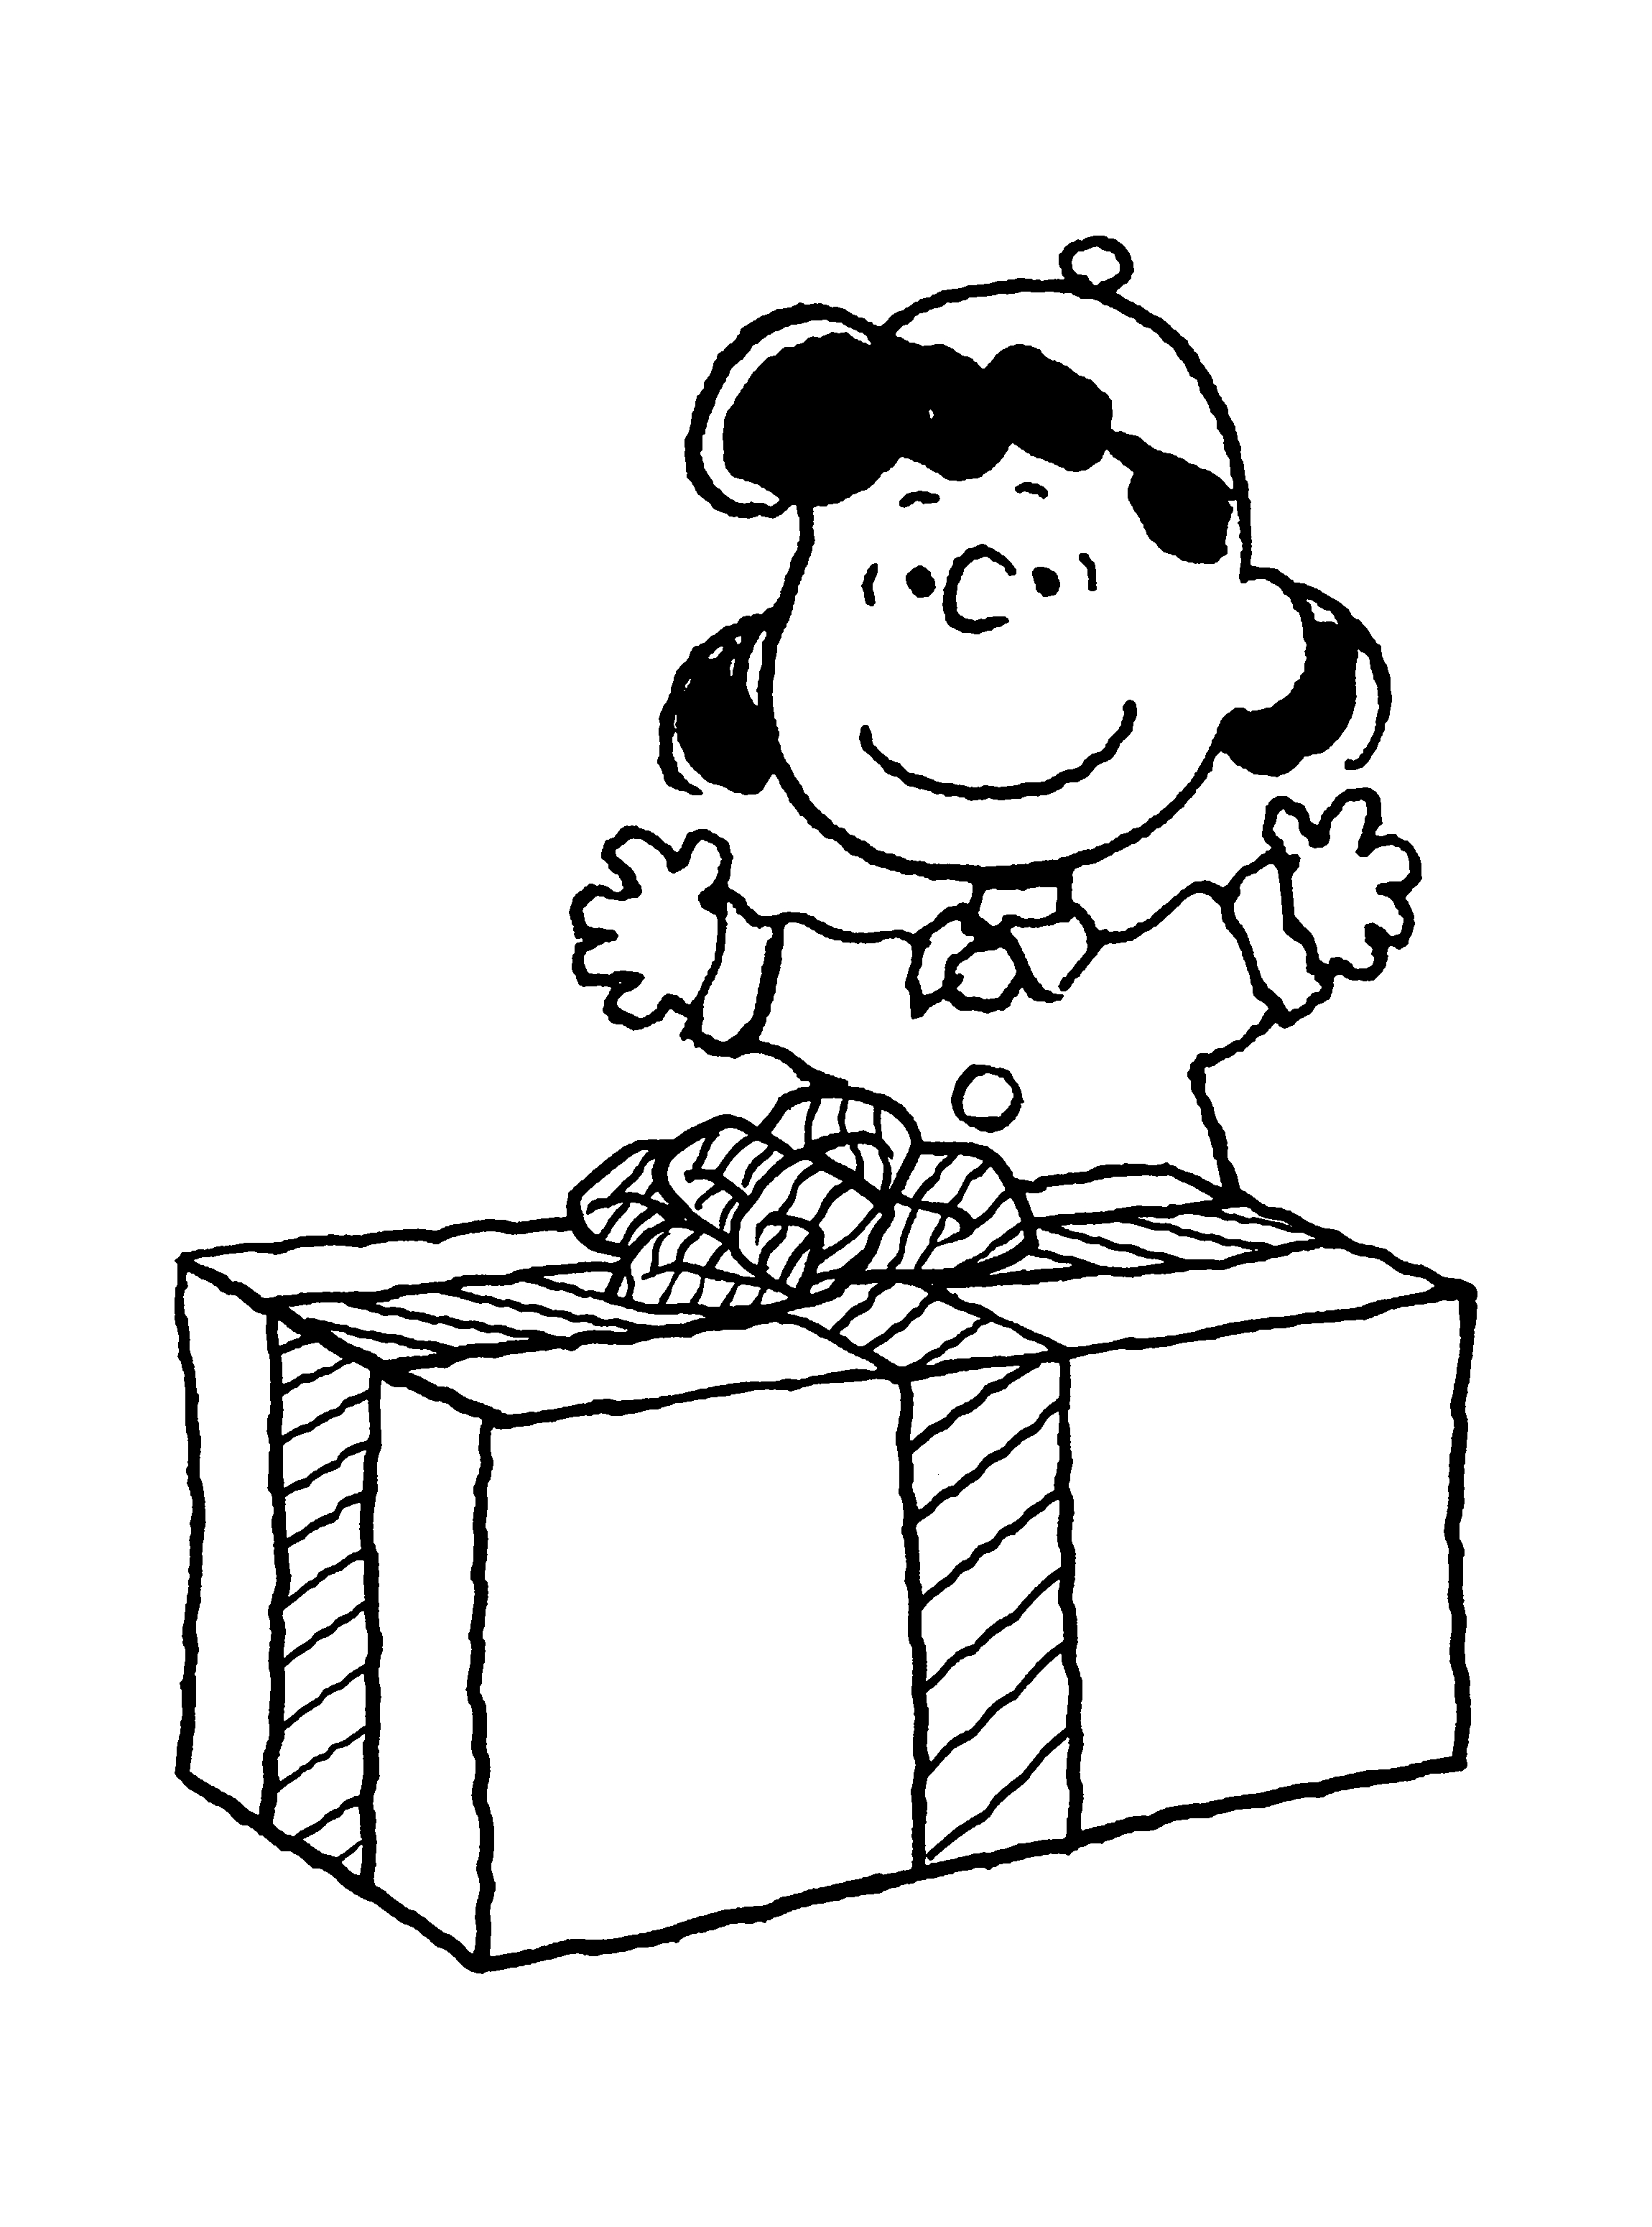 Snoopy Christmas Coloring Pages  Collection 16t - Save it to your computer